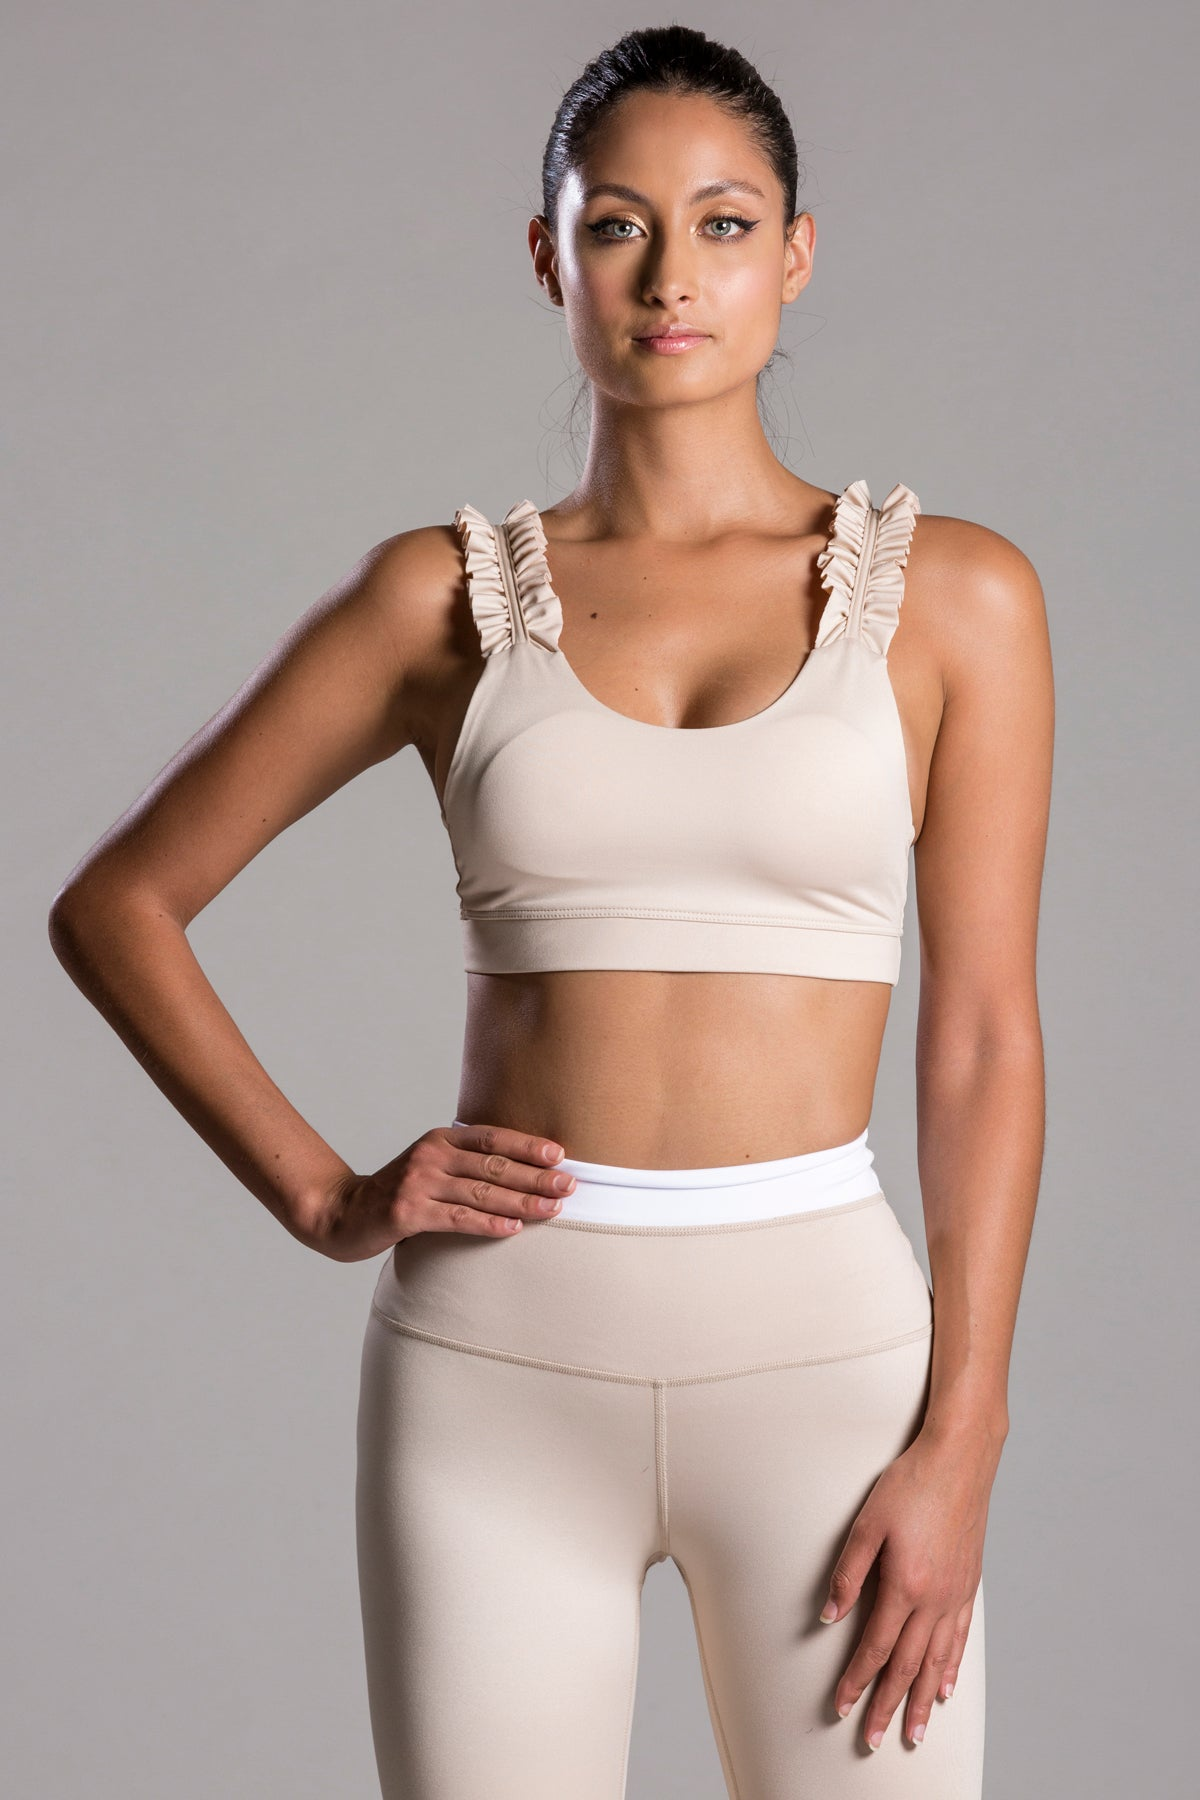 Sarah Basic Nude Top For Body Barre